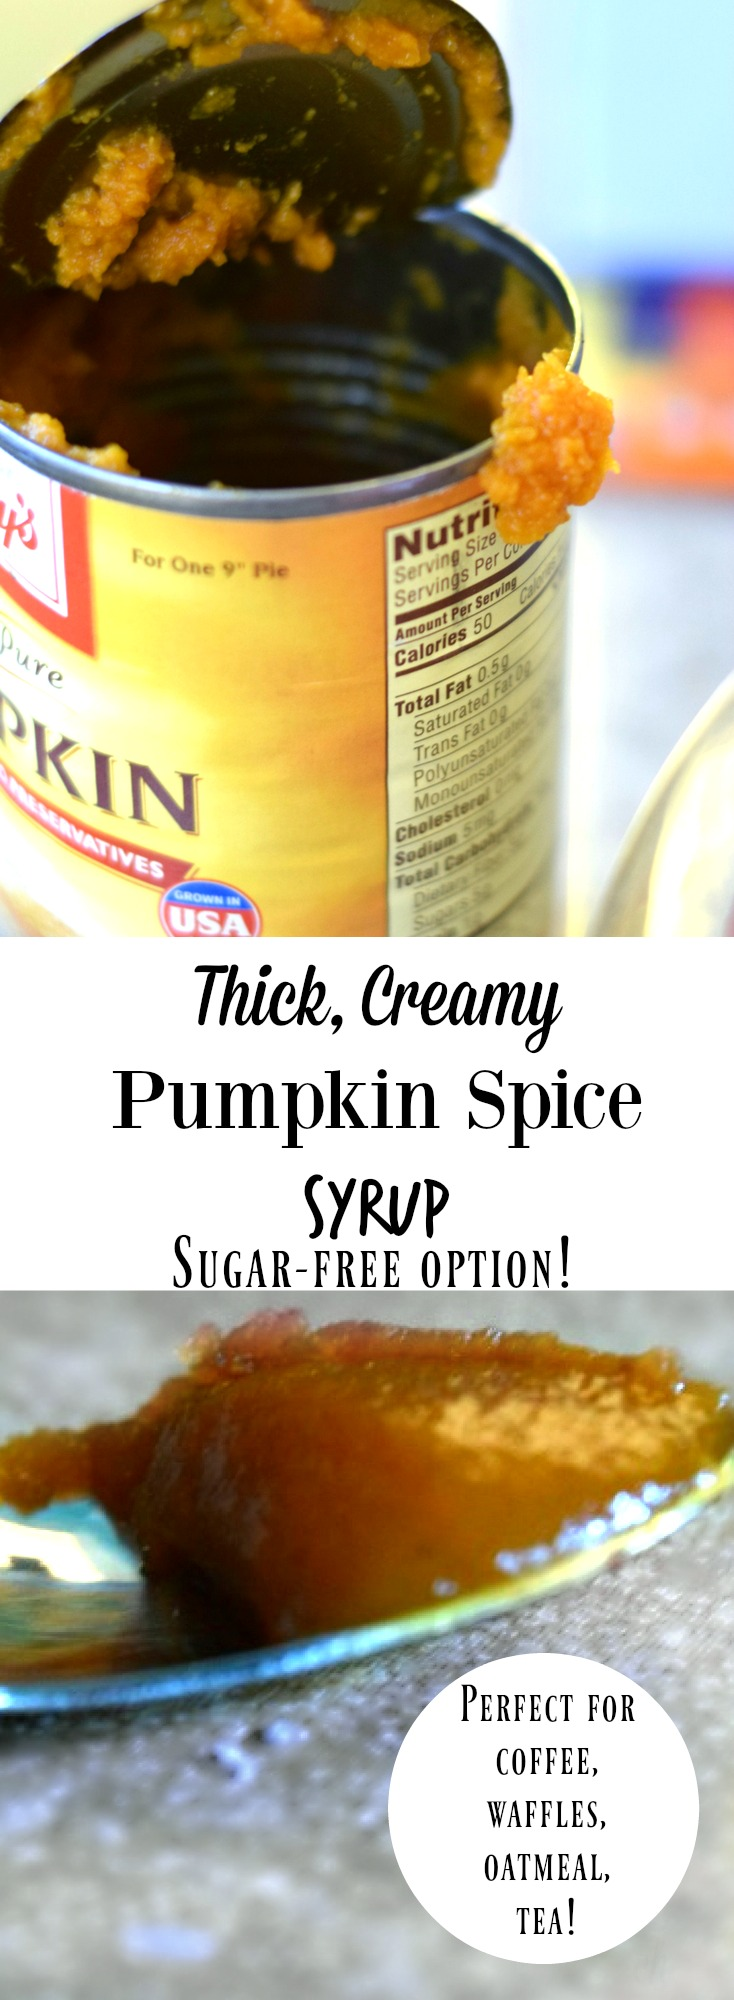 Easy pumpkin spice syrup recipe that's so thick and creamy! Can be sugar free pumpkin syrup too! on chemistrycachet.com